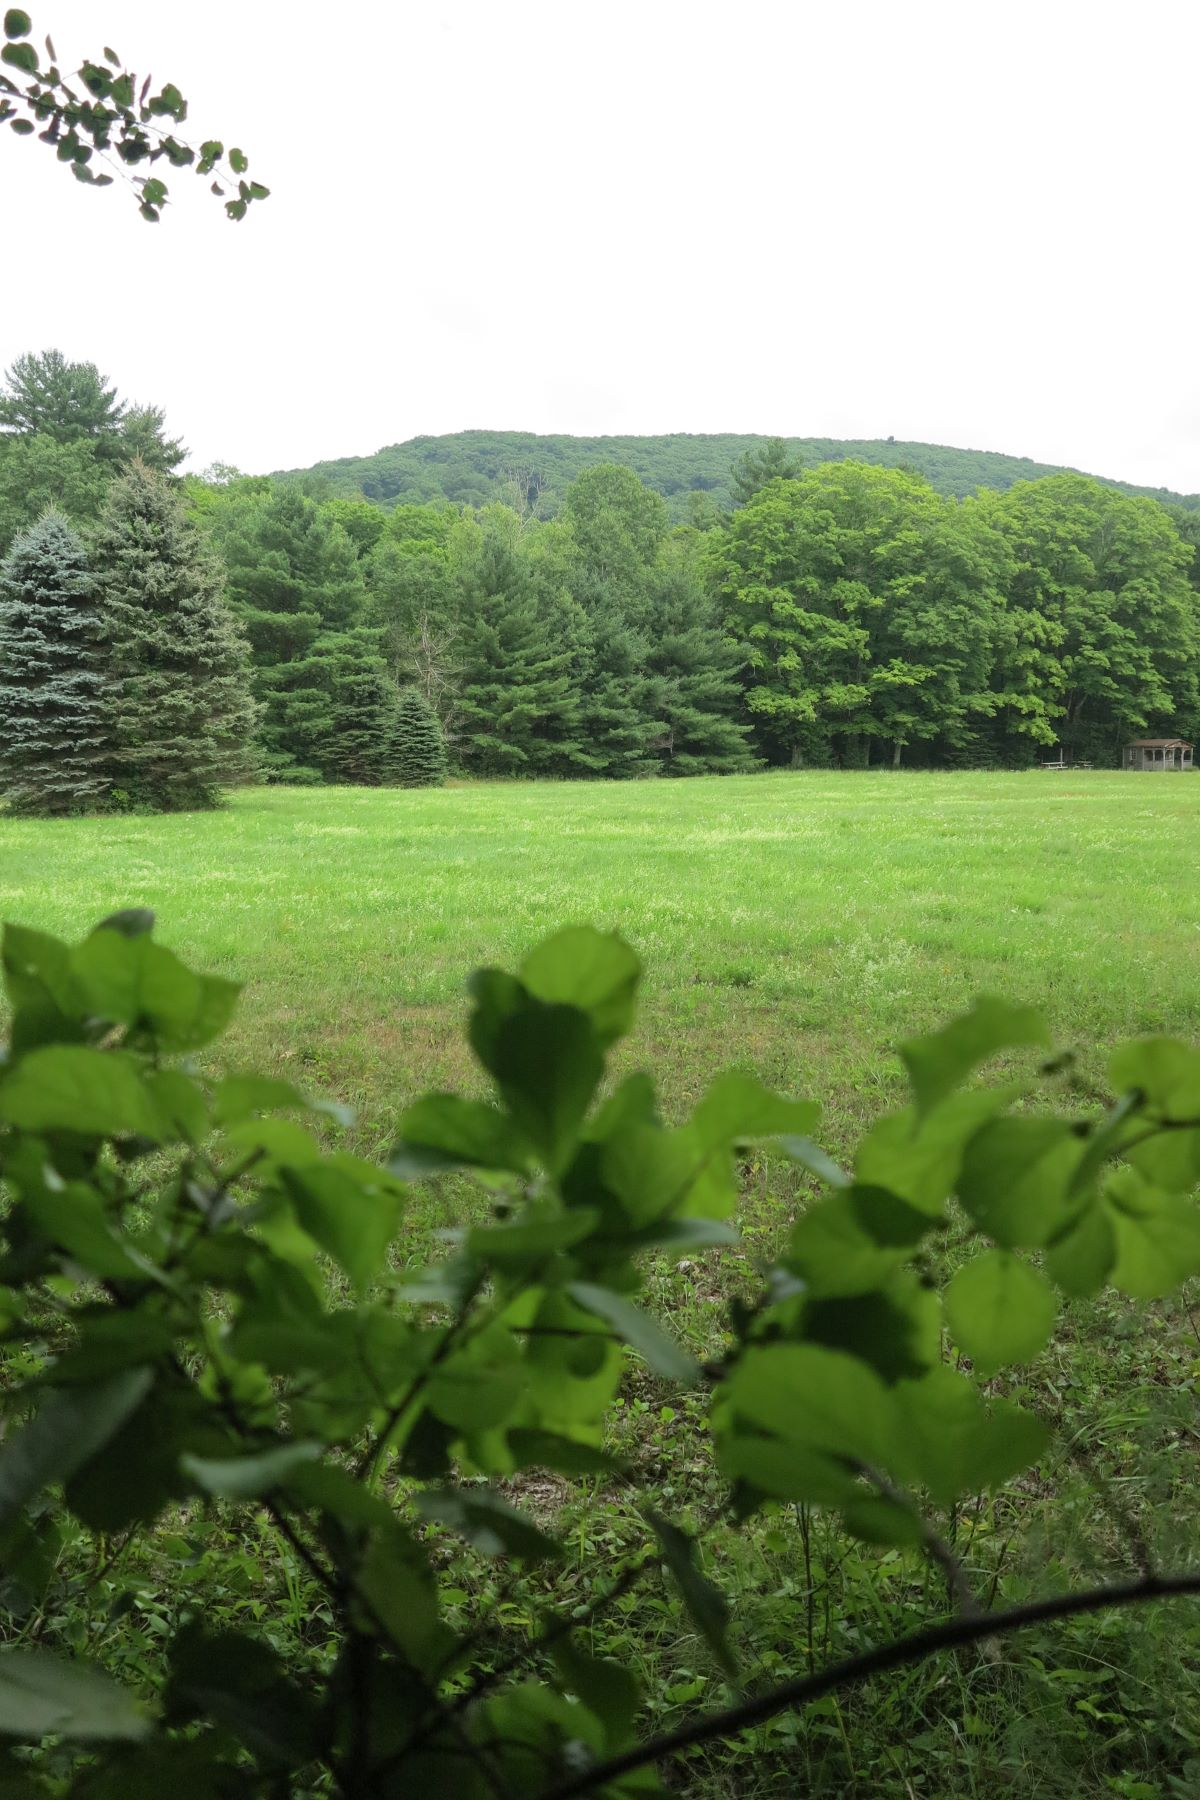 Land for Sale at Estate Parcel - 21.347 Acres with River Frontage and Meadow 112 New Marlboro-southfield Rd, New Marlborough, Massachusetts, 01230 United States